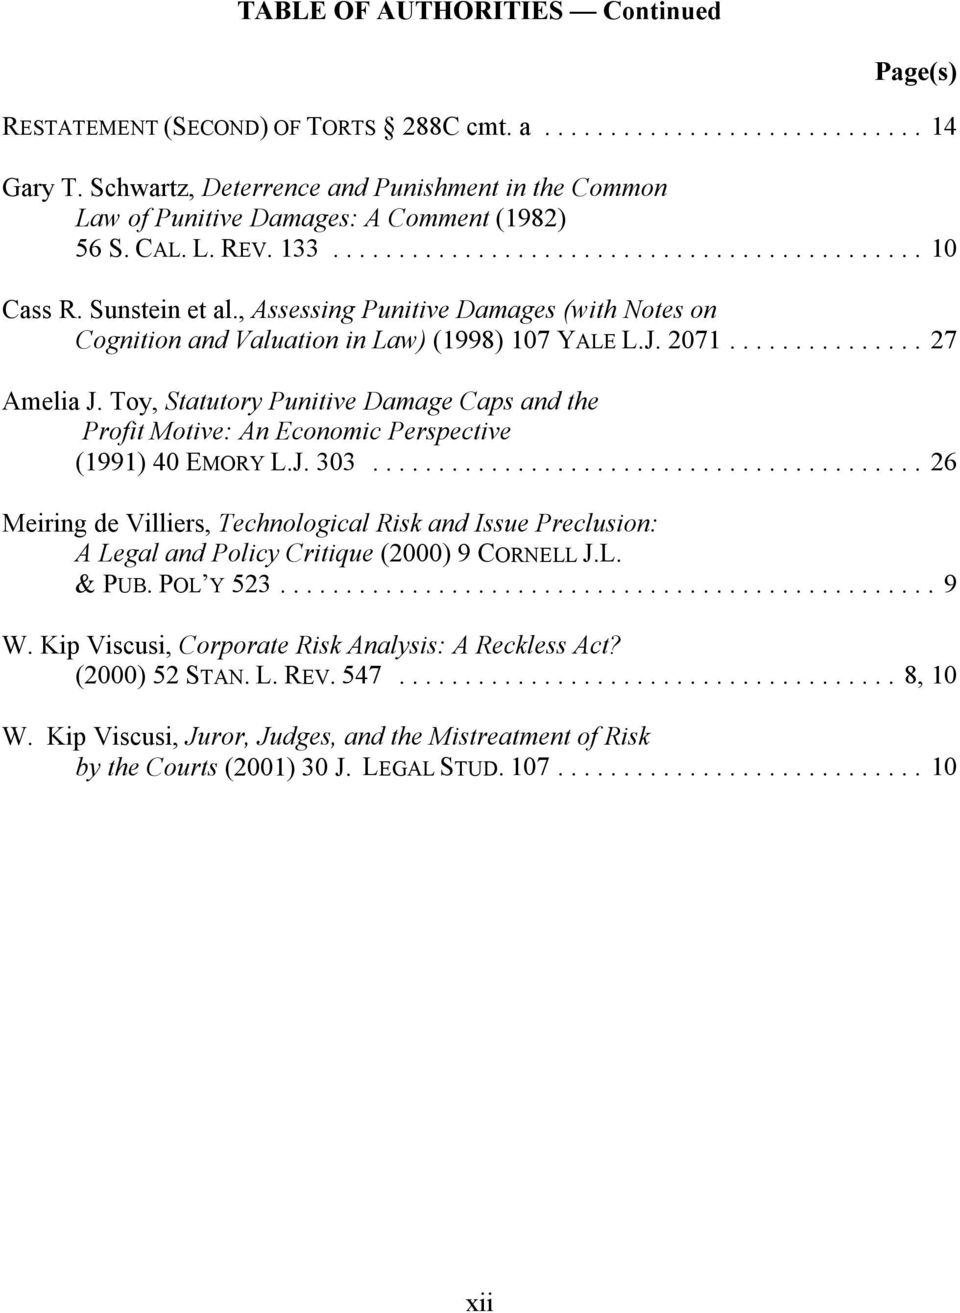 Toy, Statutory Punitive Damage Caps and the Profit Motive: An Economic Perspective (1991) 40 EMORY L.J. 303.